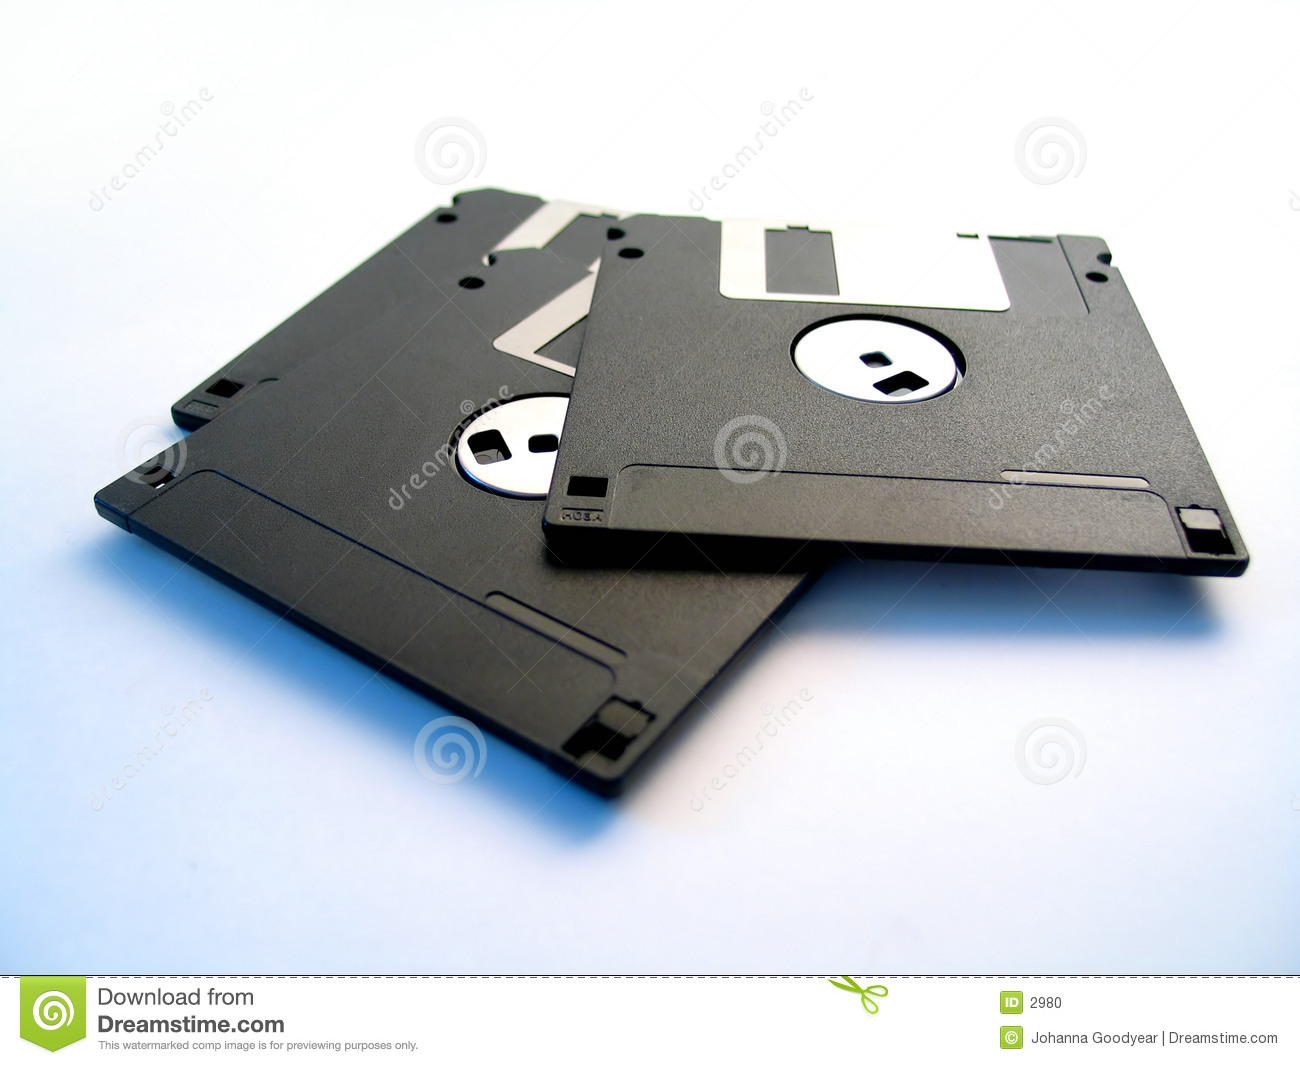 Drie diskettes